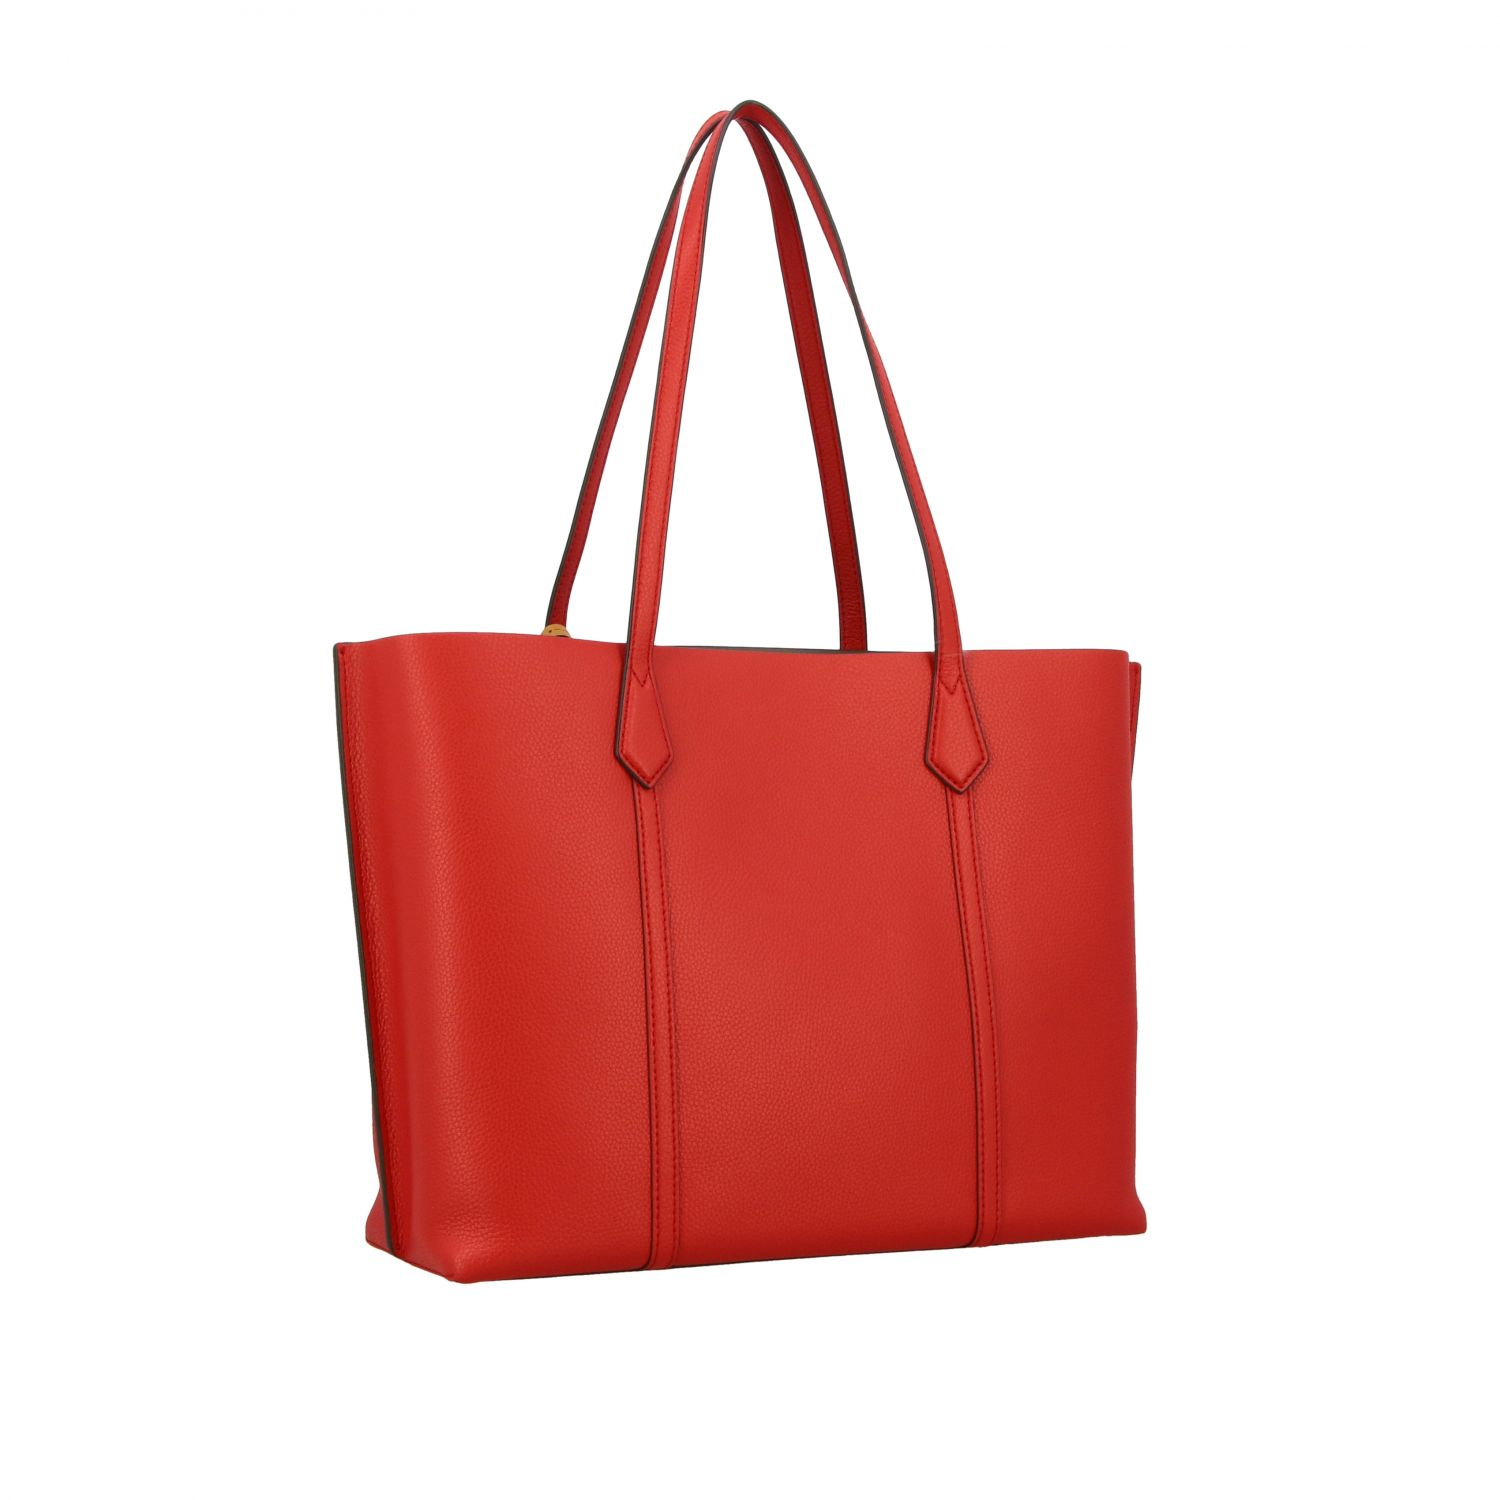 Perry Tory Burch tote bag in textured leather red 3